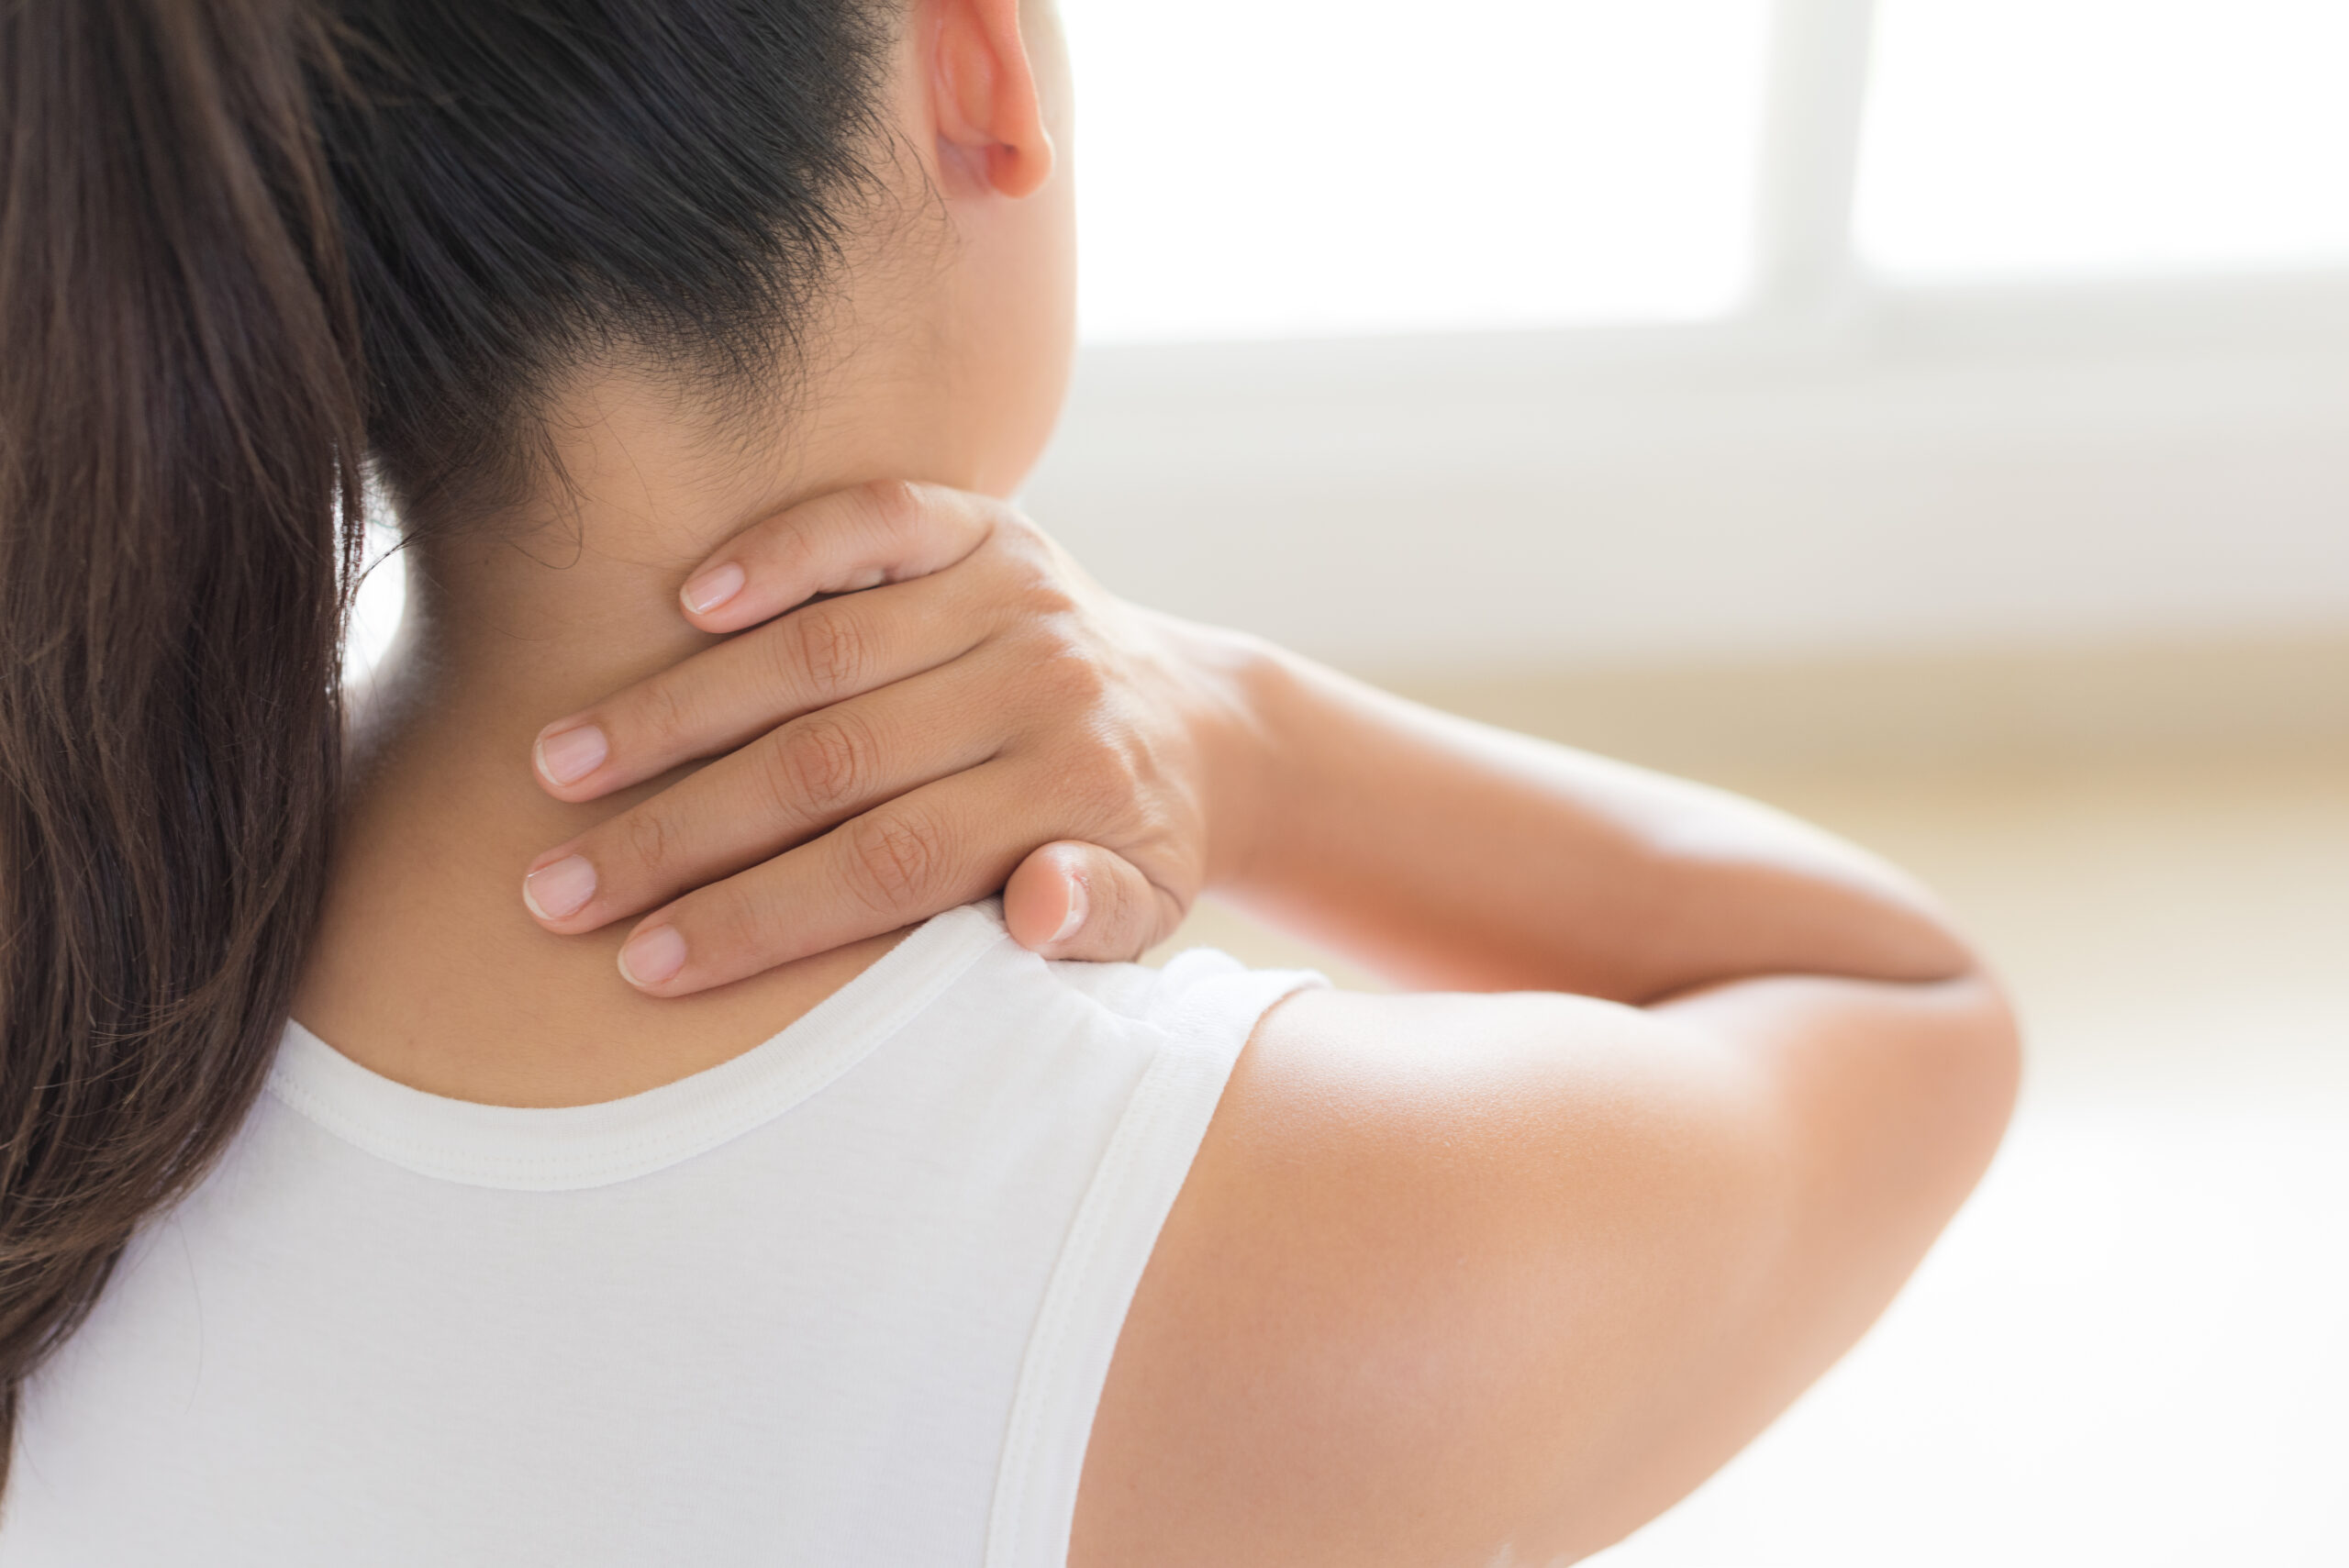 Chiropractic Care for Neck Pain in Wichita Kansas